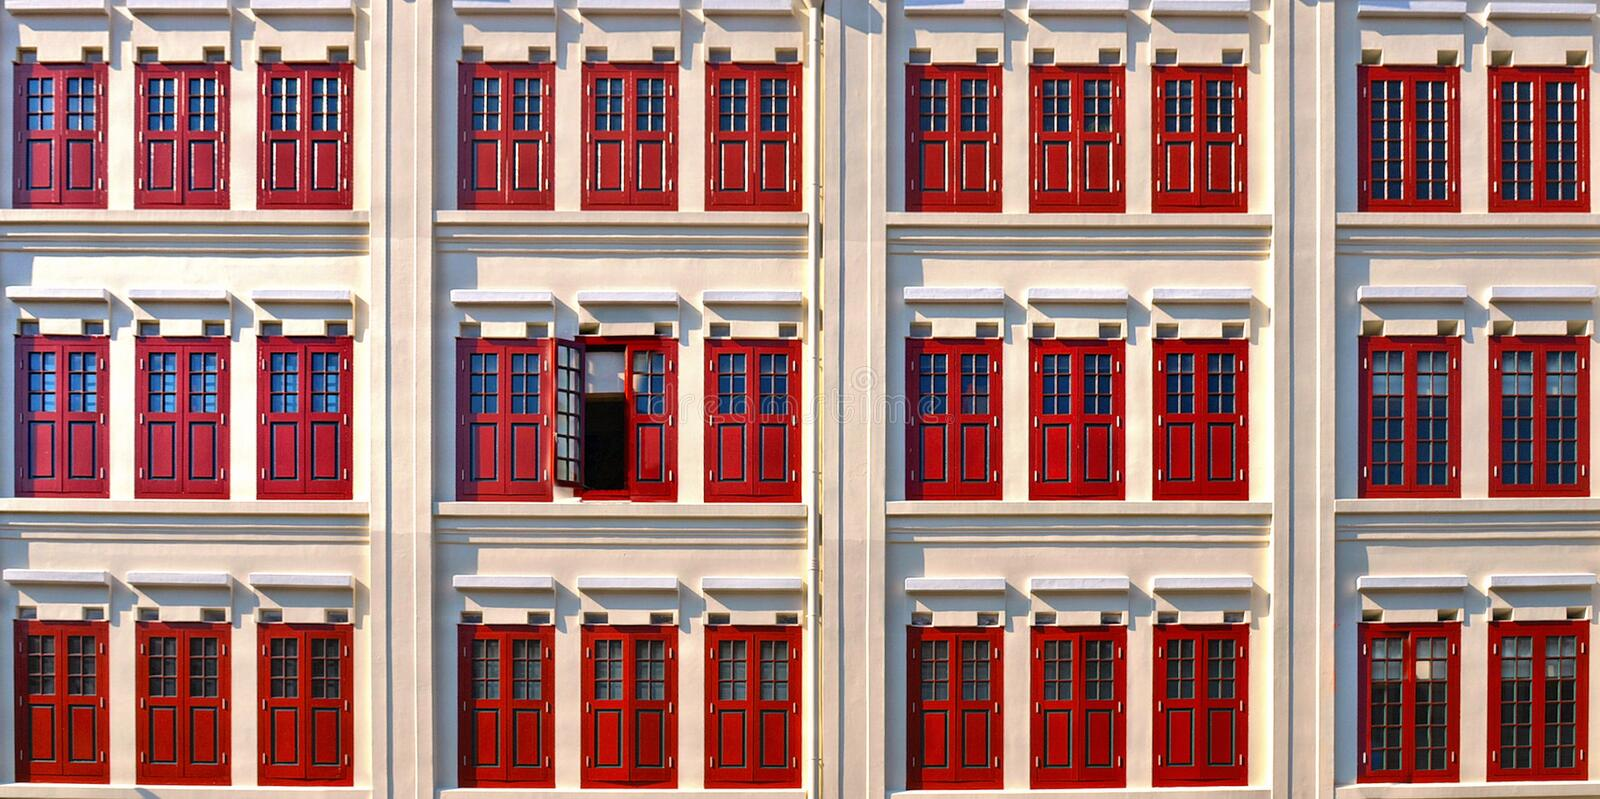 White building and red windows in classic colonial architecture buildings in singapore china town royalty free stock photography